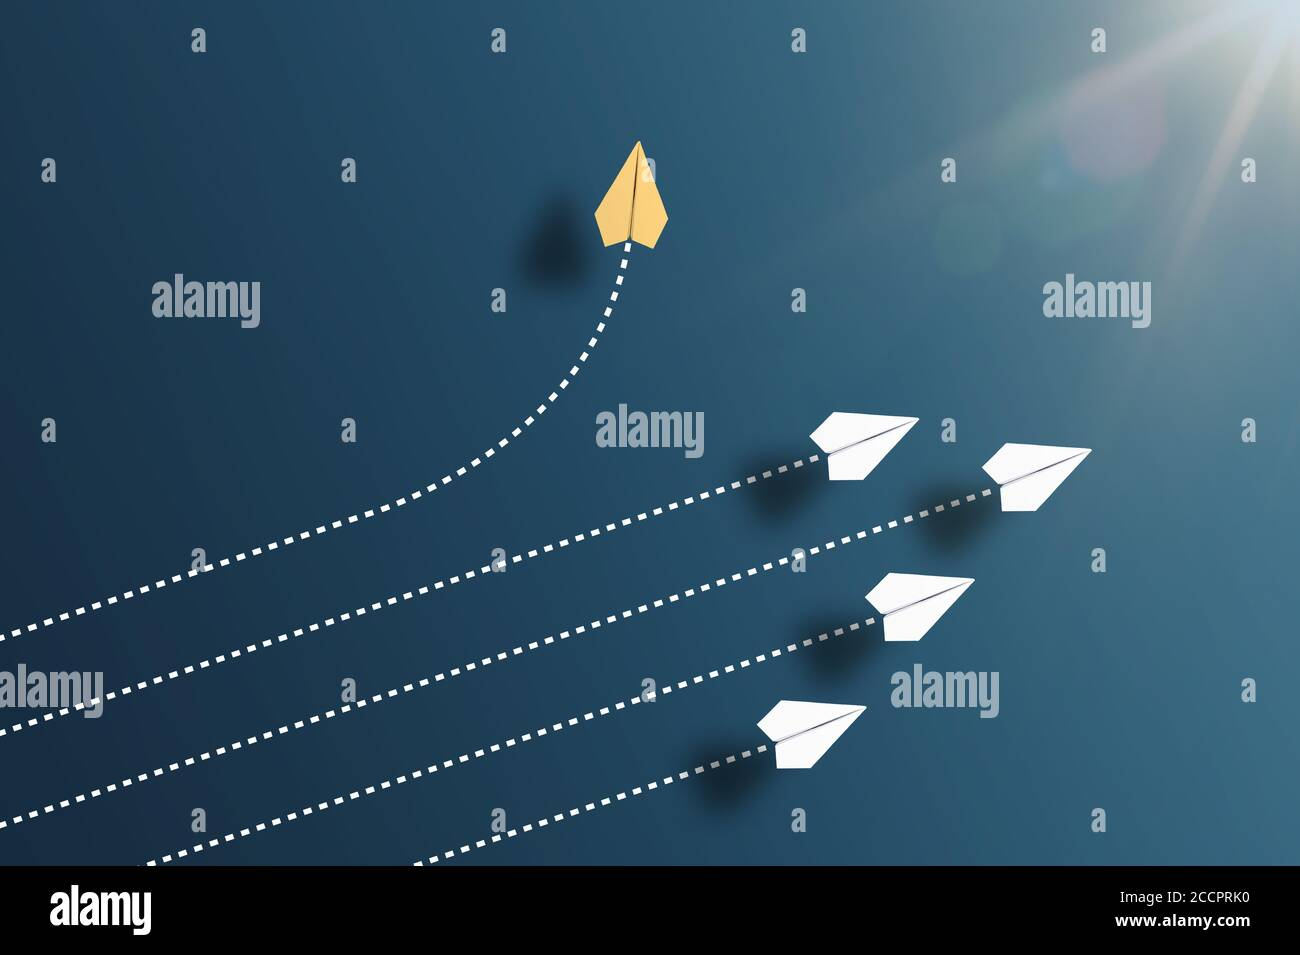 paper planes flying in formation in one direction on blue background and one paper glider going in different direction, breaking new ground and Stock Photo